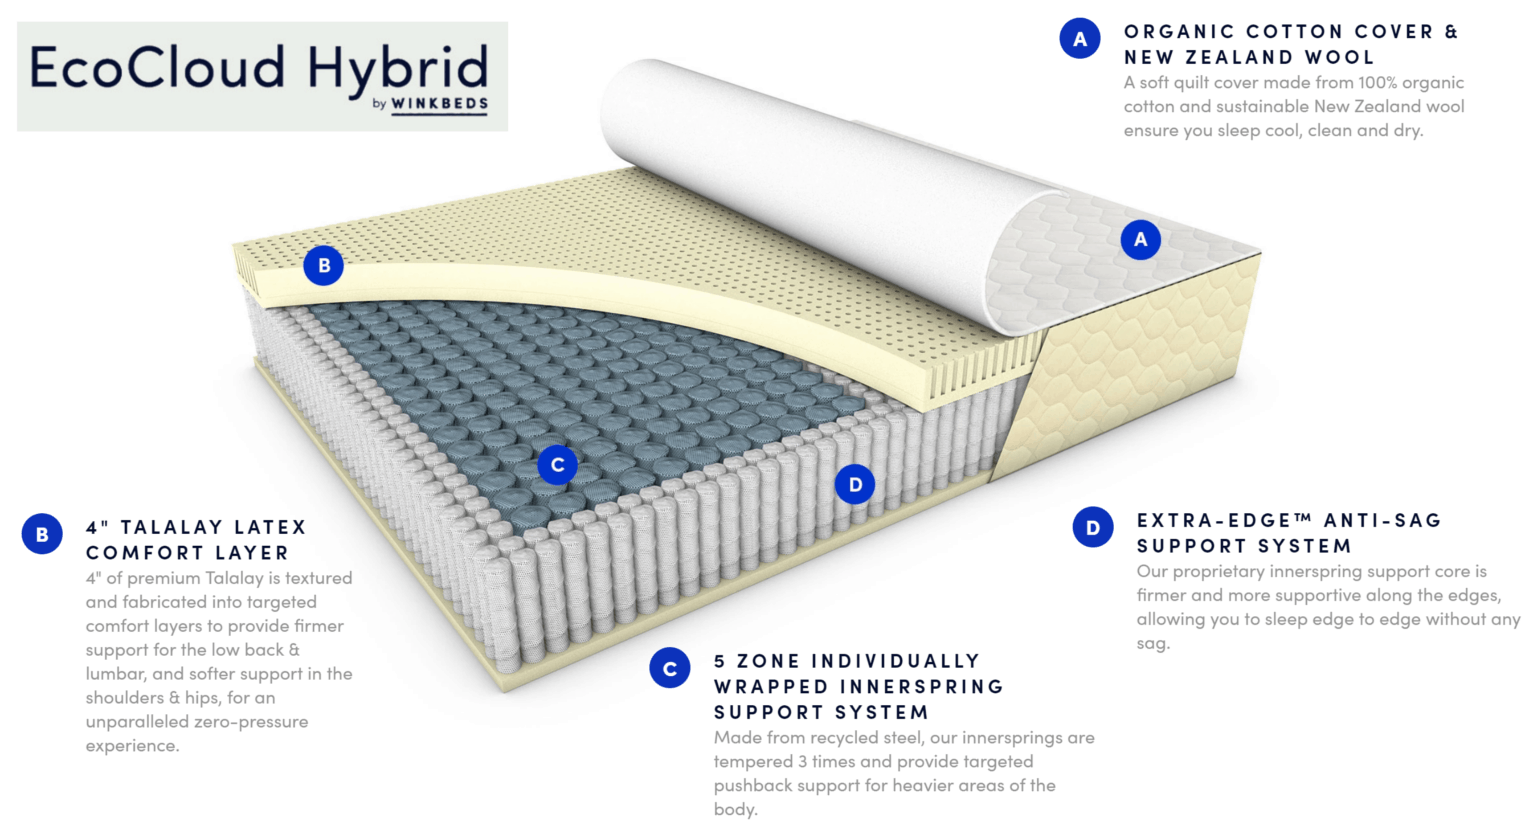 ecocloud hybrid materials